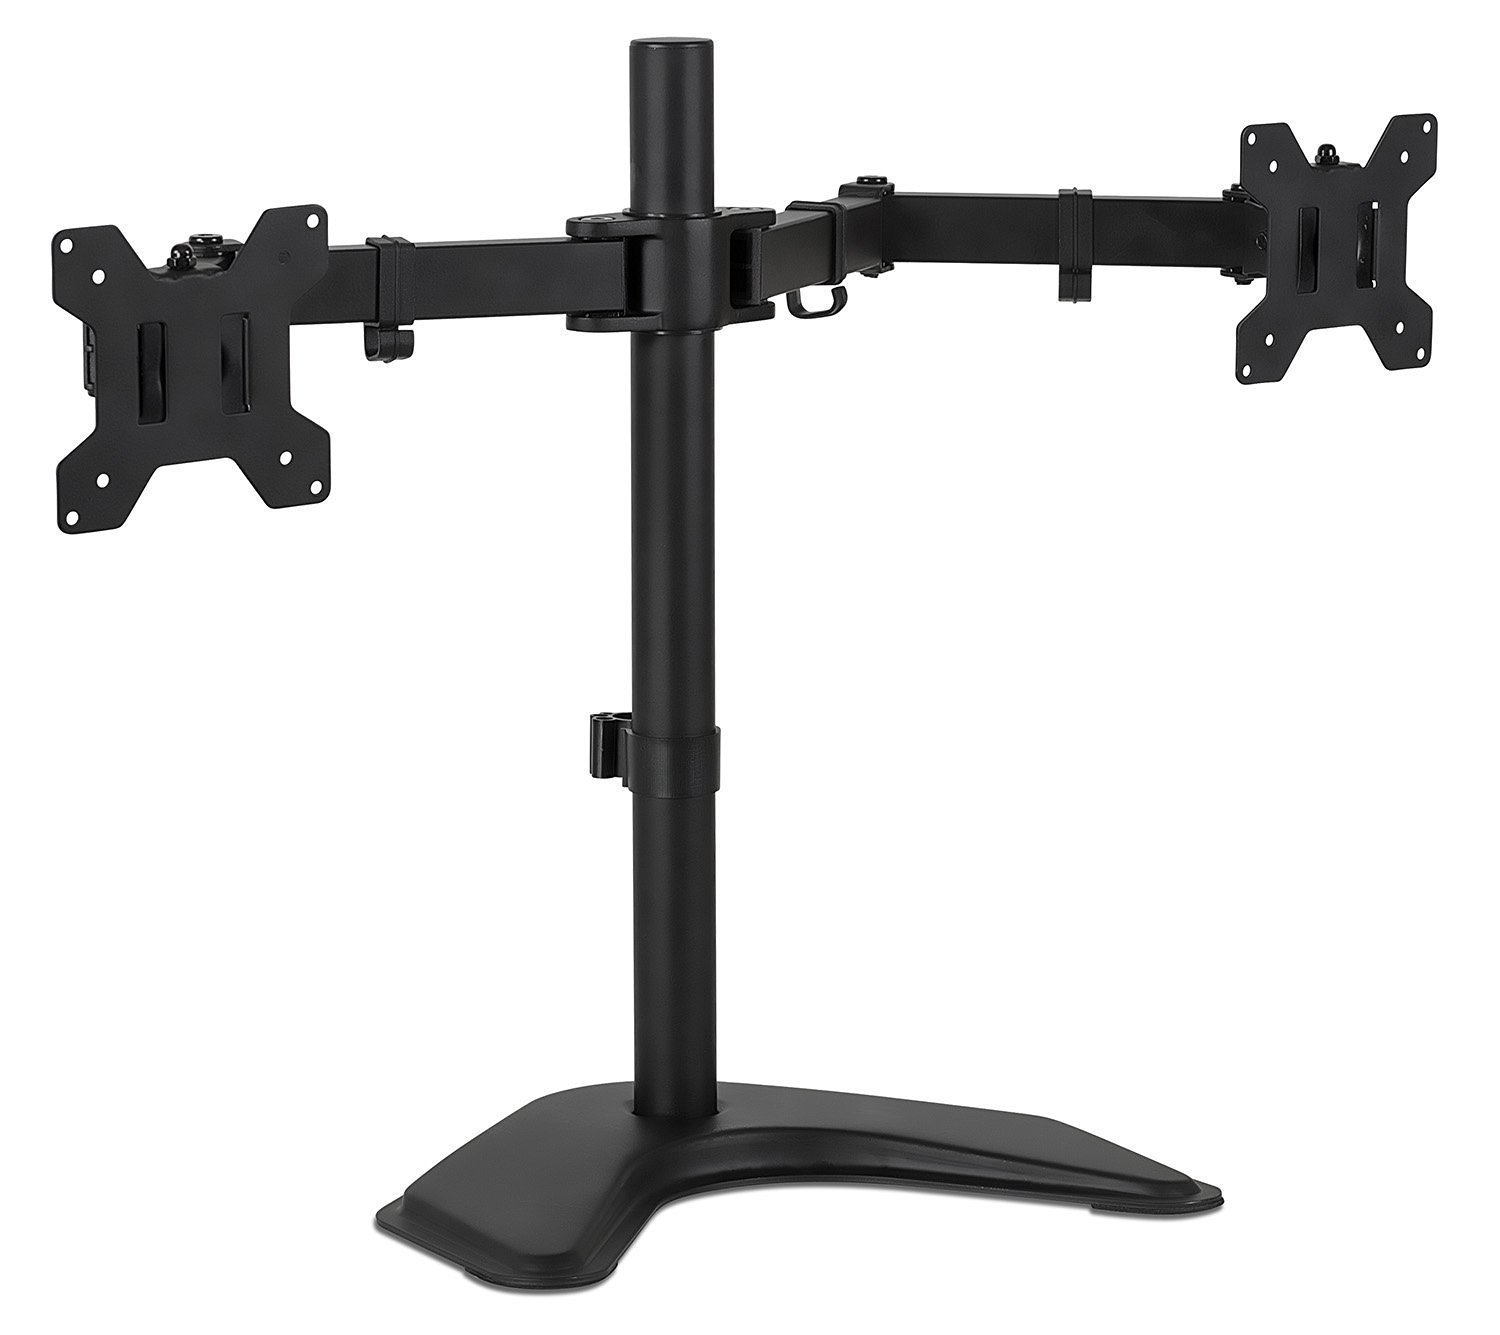 Mount-It! Dual Monitor Stand | Double Monitor Desk Stand Fits Two x 19 20 21 22 23 24 Inch Computer Screens | Freestanding and Grommet Base | 2 Heavy Duty Full Motion Adjustable Arms | VESA Compatible